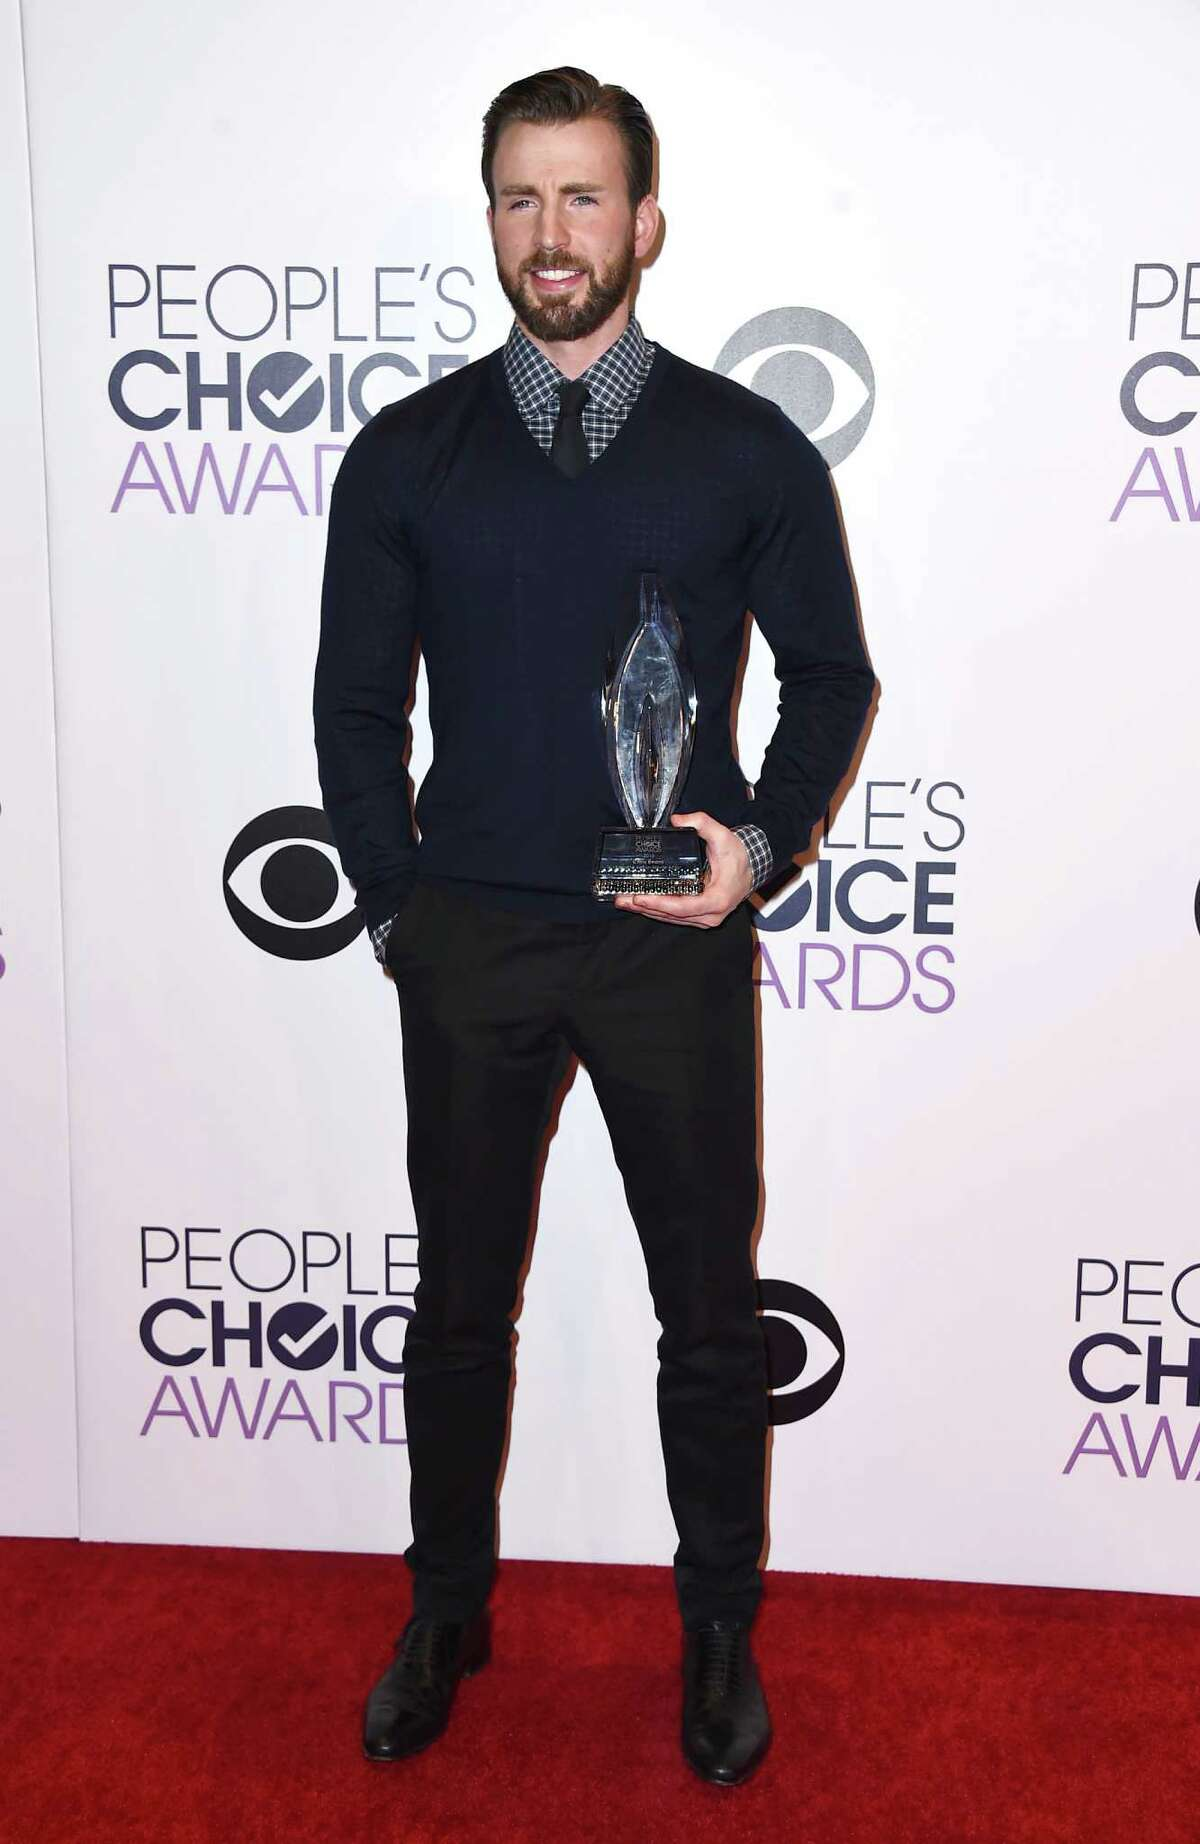 Chris Evans poses in the press room with the award for favorite action movie actor at the People's Choice Awards at the Nokia Theatre on Wednesday, Jan. 7, 2015, in Los Angeles. (Photo by Jordan Strauss/Invision/AP)